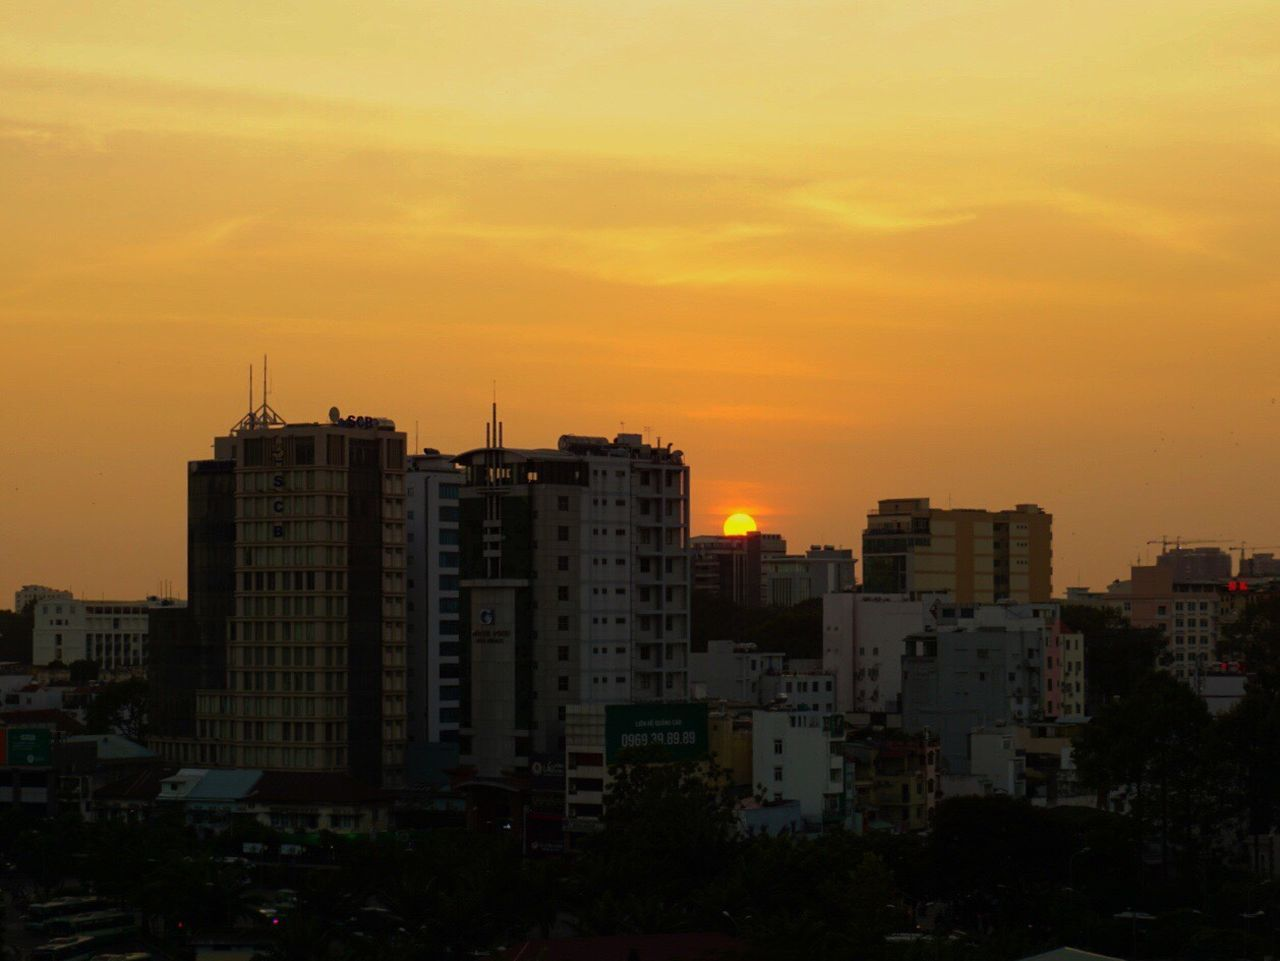 Sun setting over Saigon Building Exterior City Sunset Orange Color No People Skyscraper Visitvietnam City Life Saigon Hochiminhcity Vietnam Discovervietnam Travel Destinations